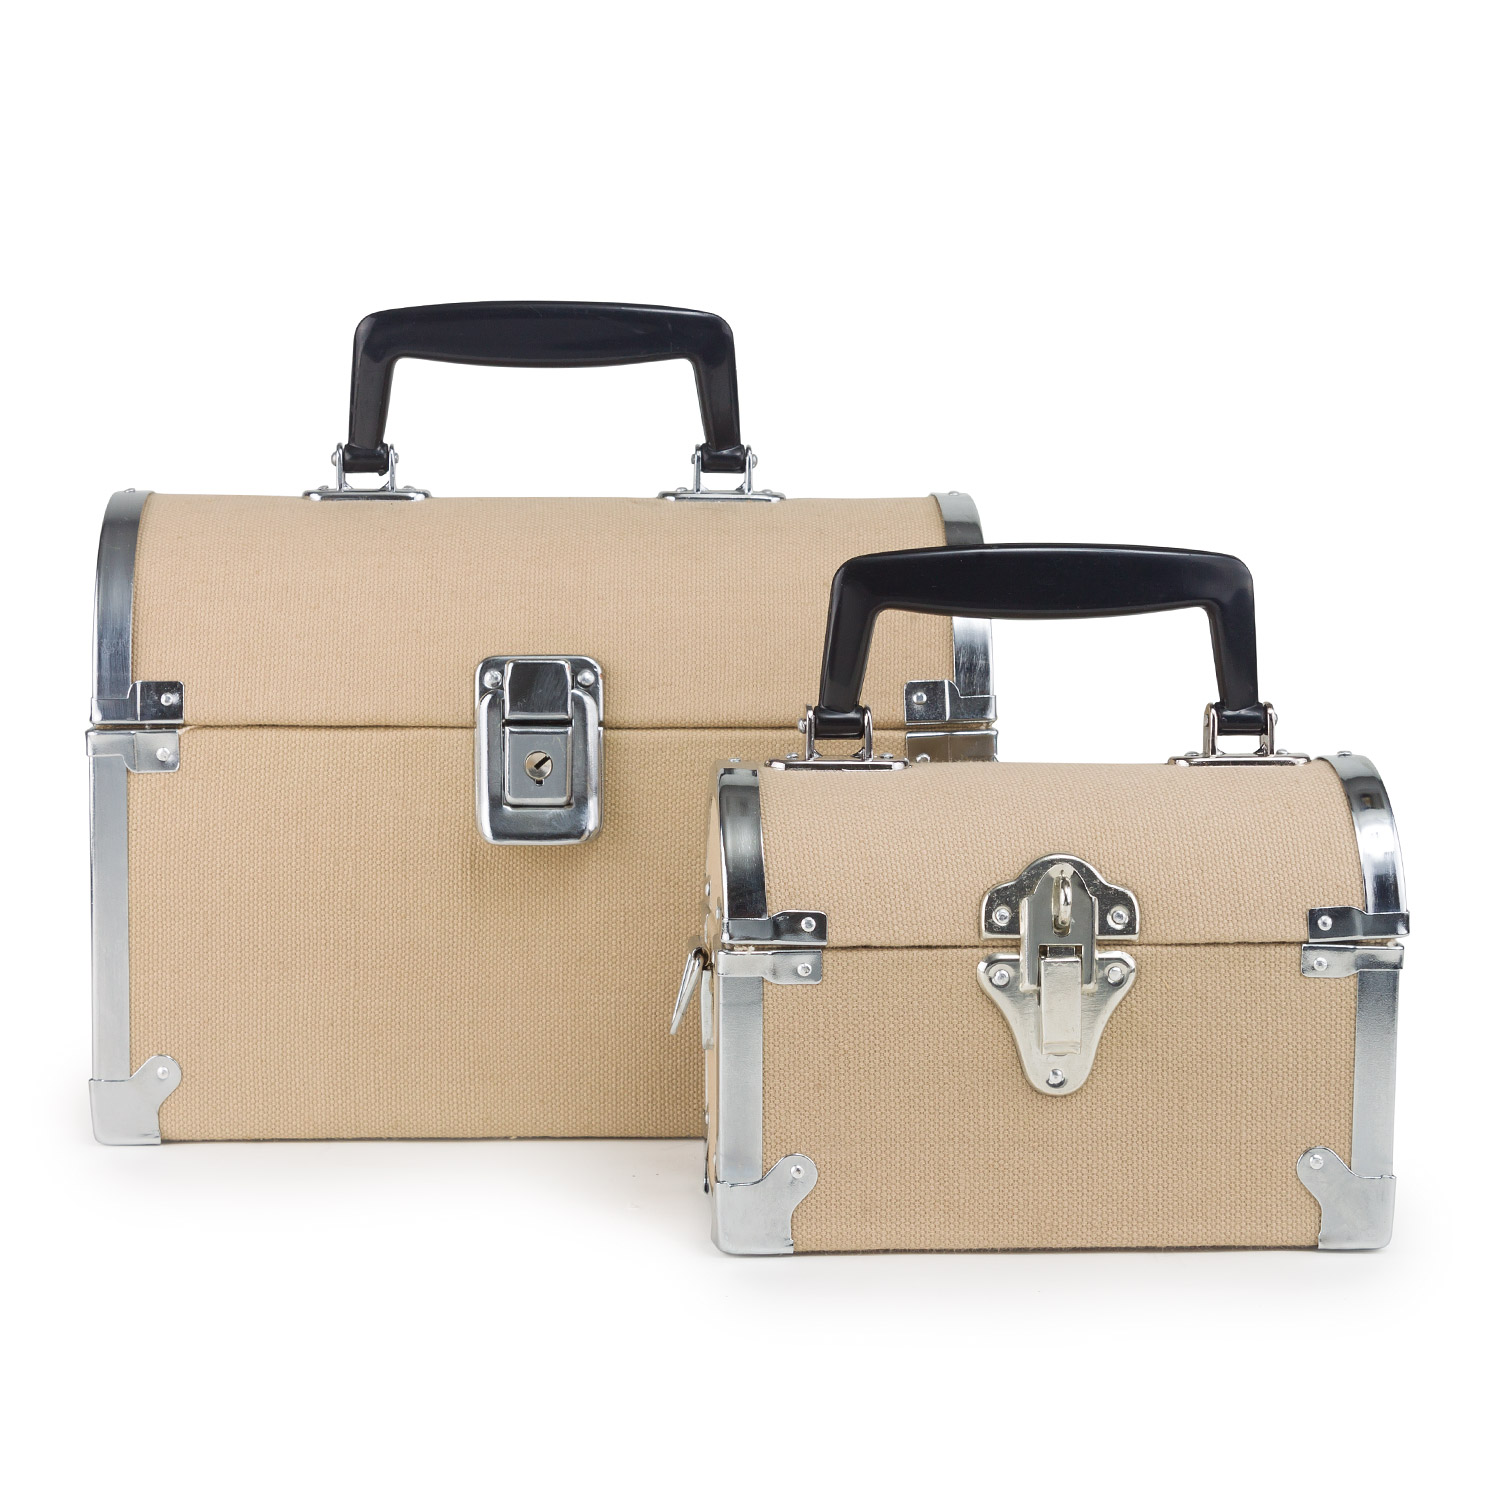 Small Canvas Laundry Bag Alami Cases And Trunks Canvas Bag